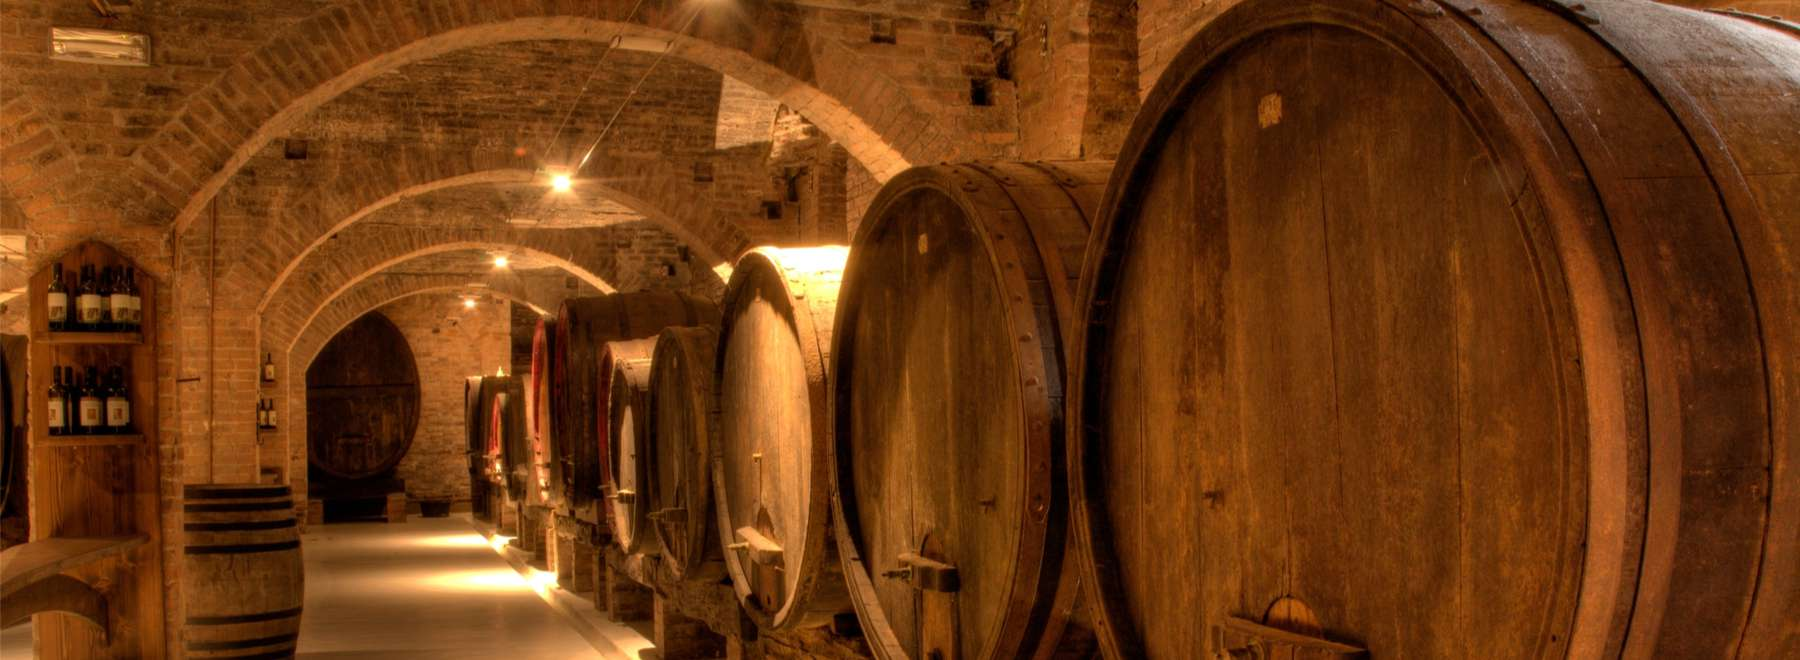 Wine Celler in Tuscany